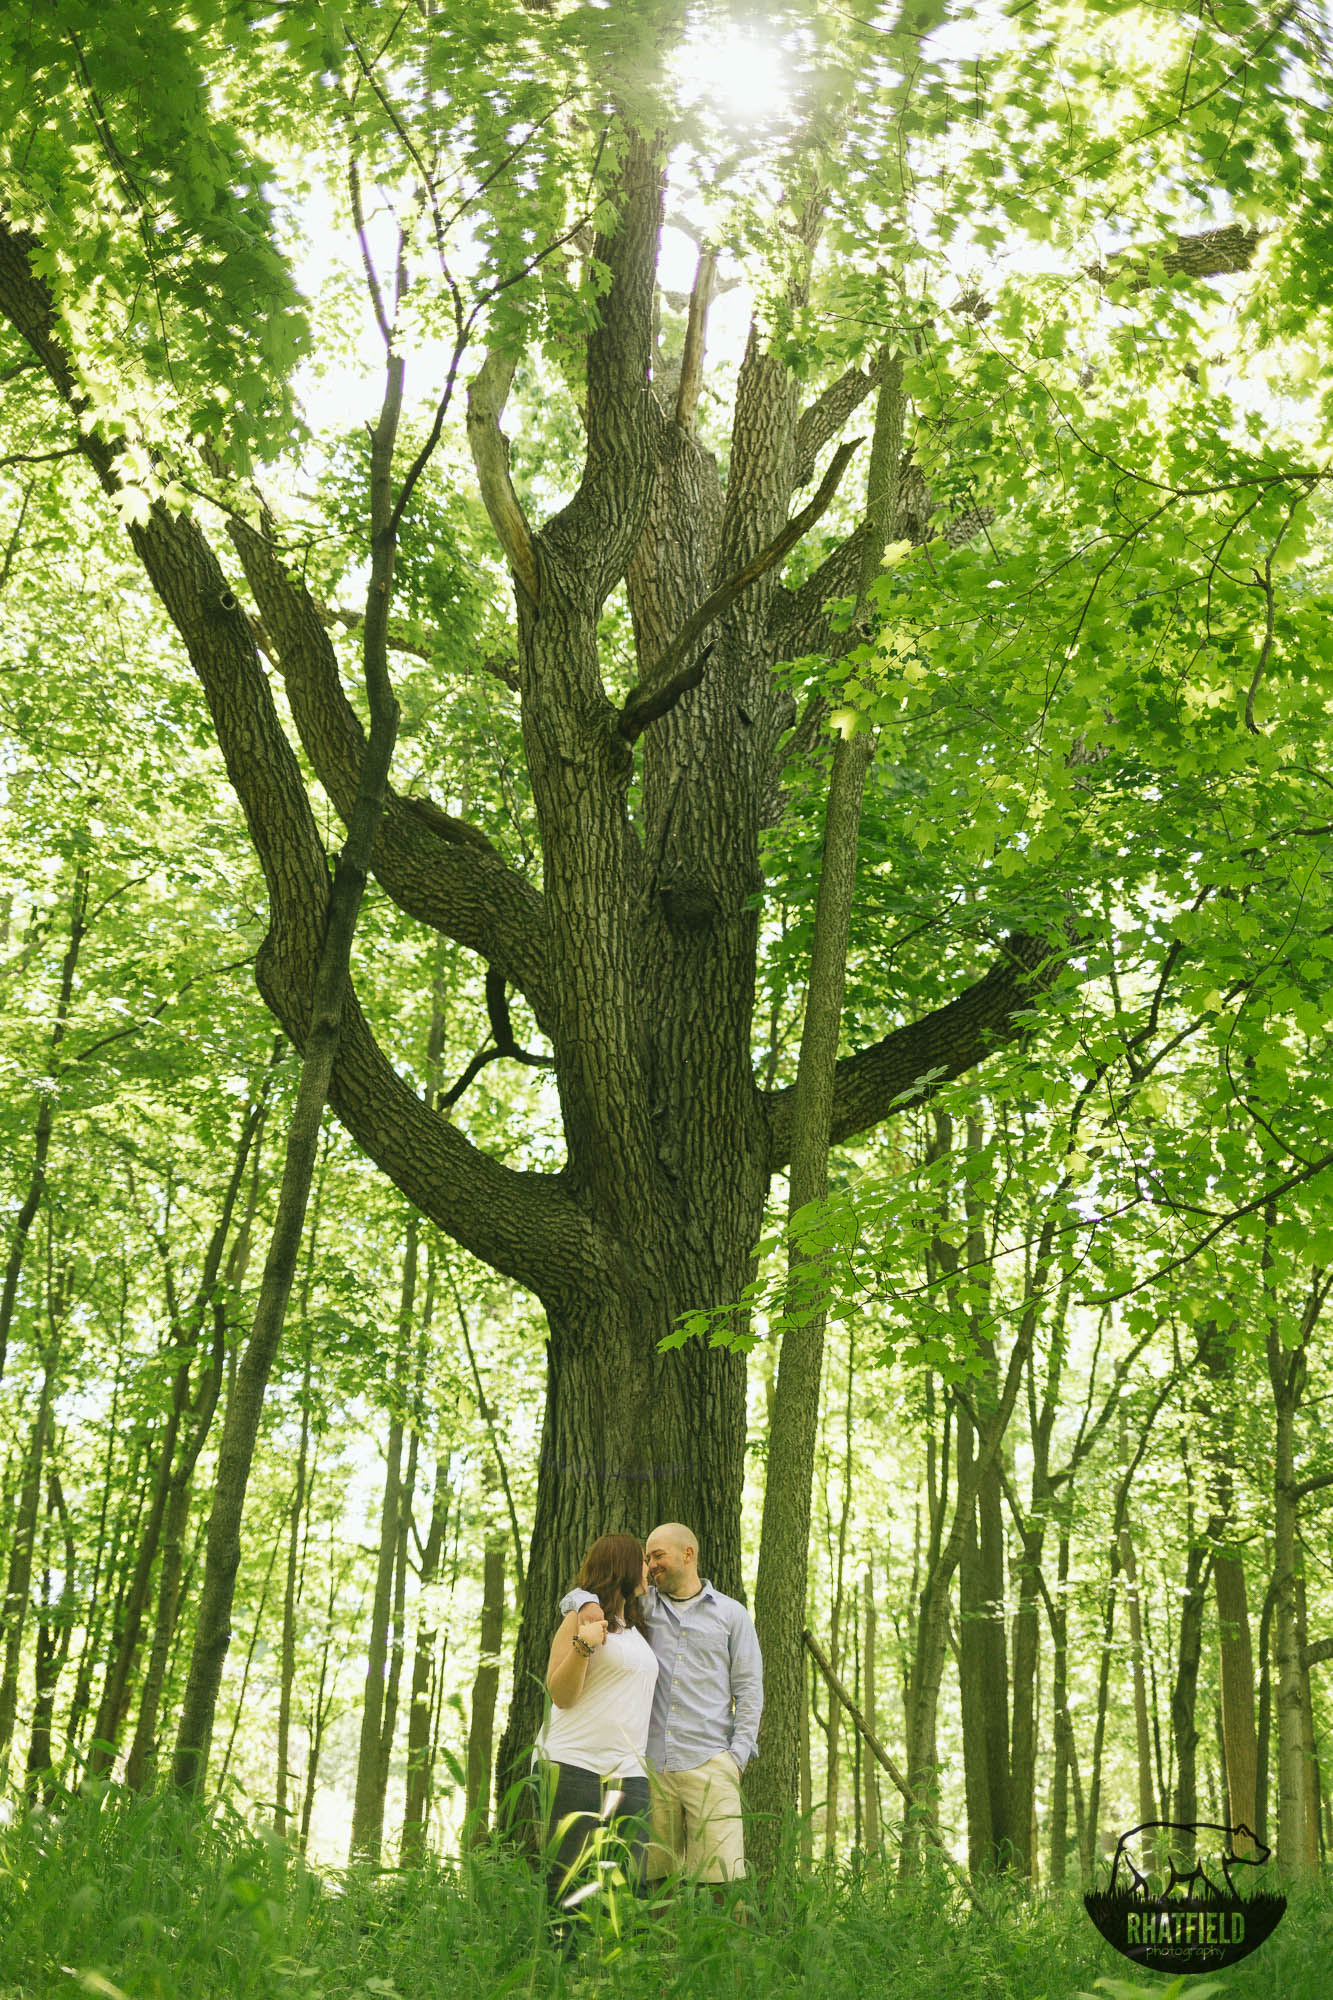 eachothers-eyes-giant-green-tree